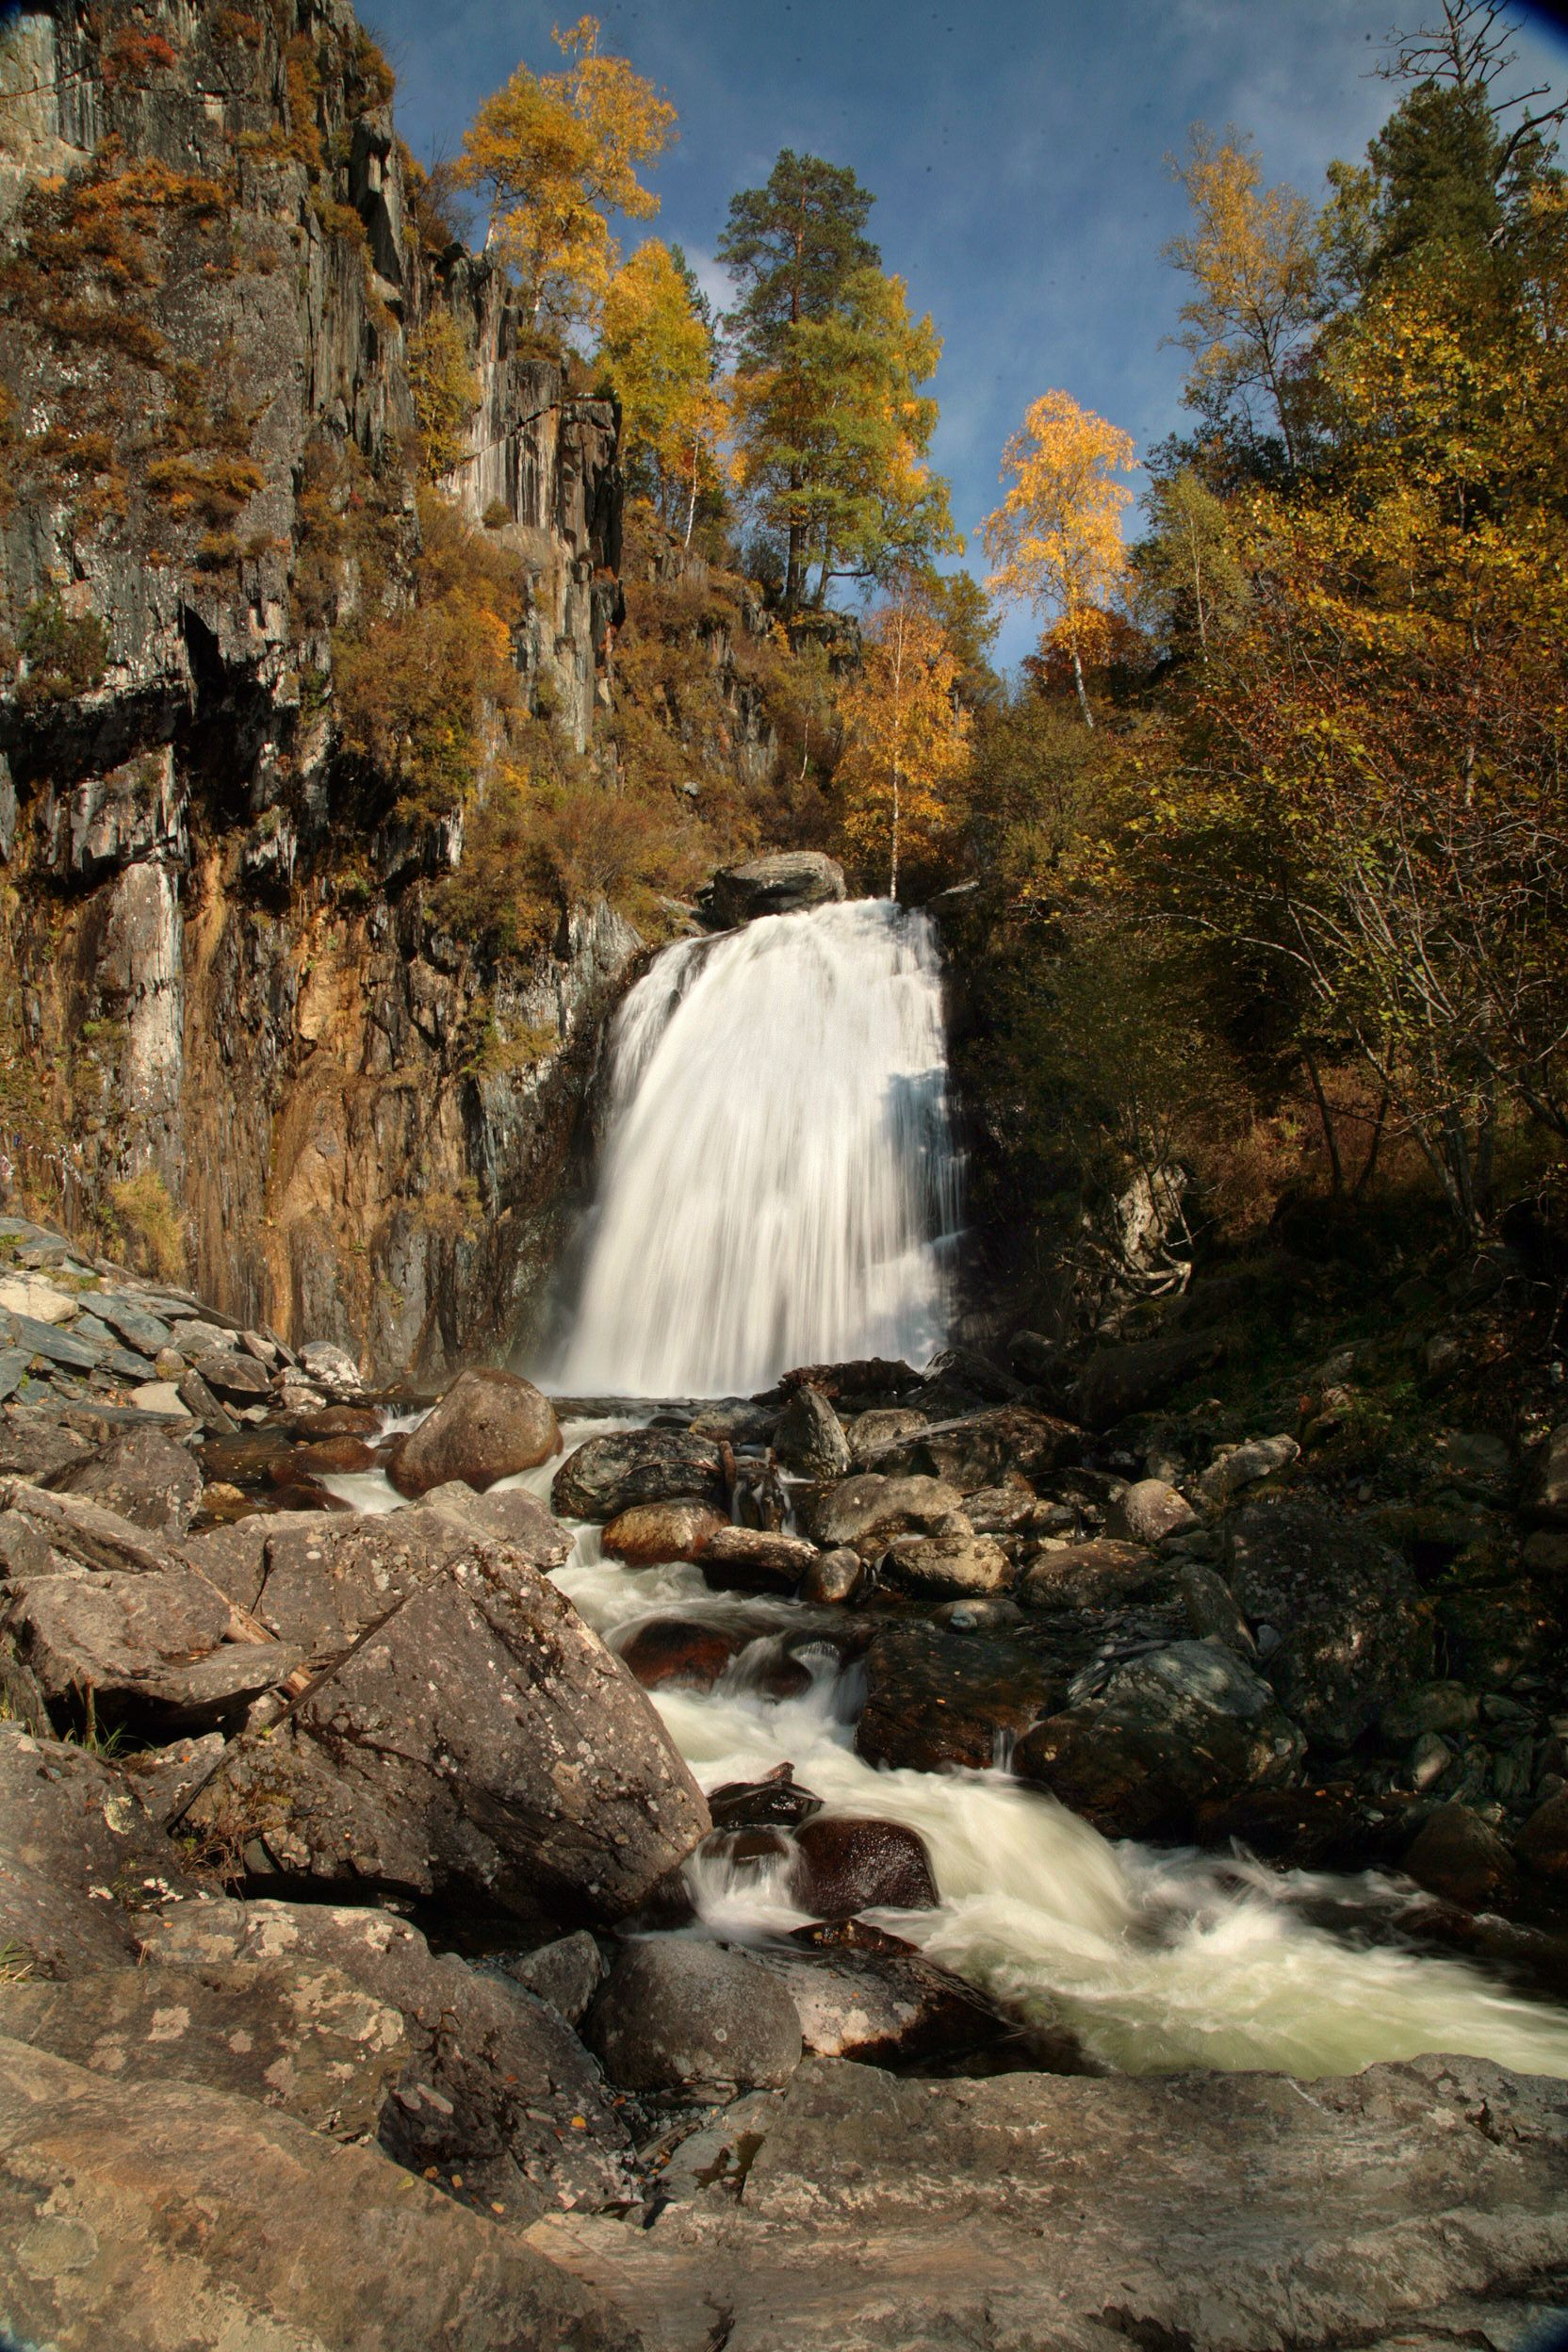 Altay waterfalls      photo: Andrey Kochkin